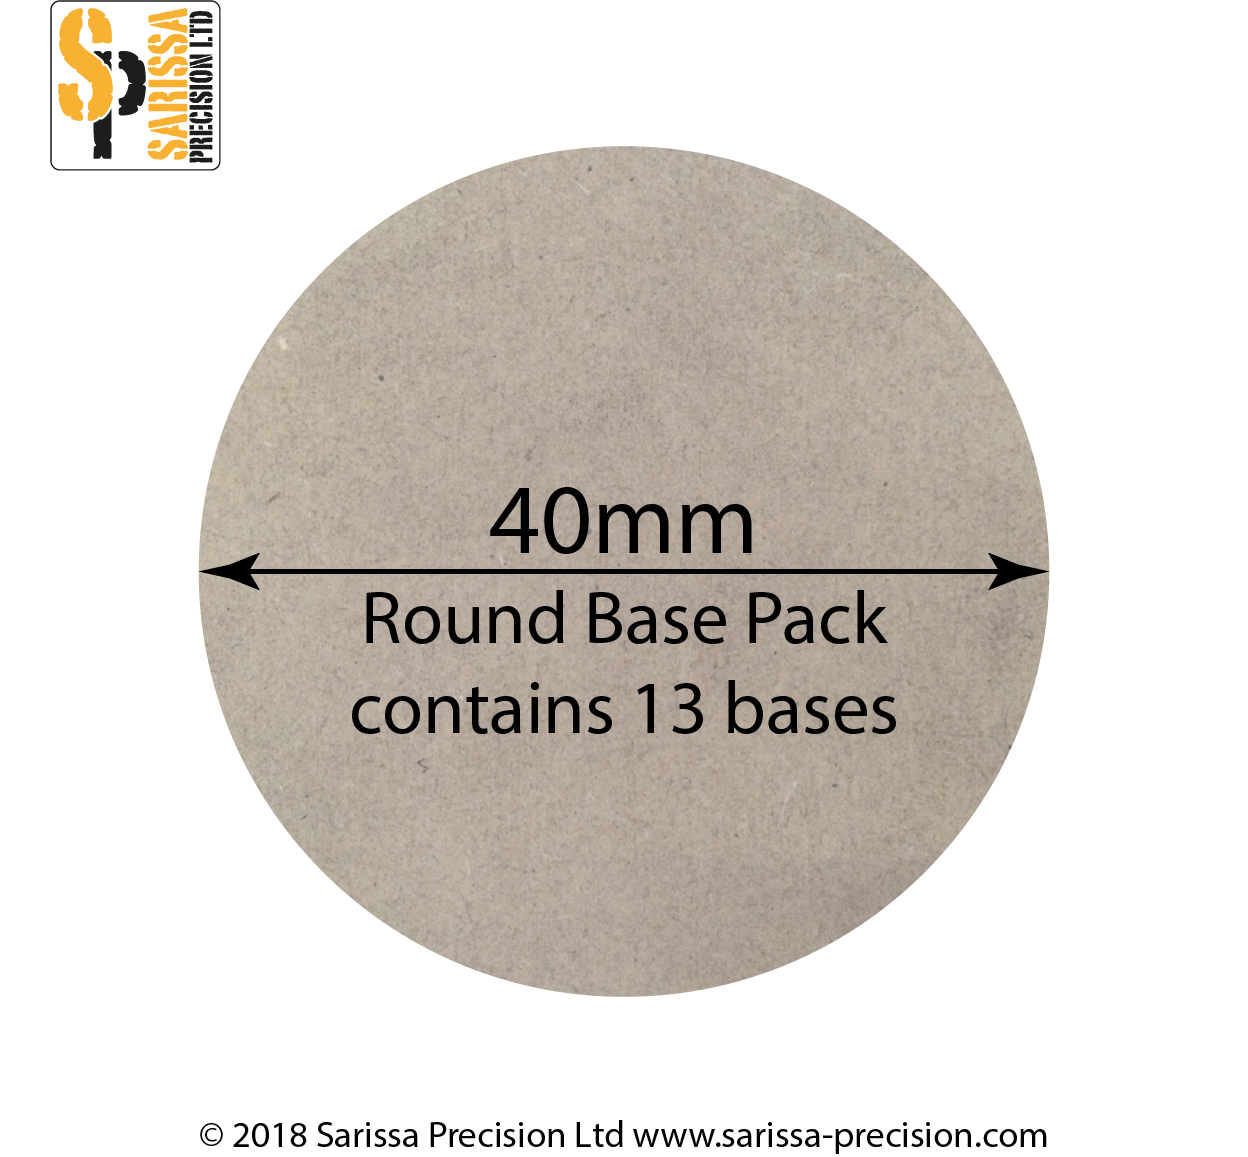 40mm Round Base Pack